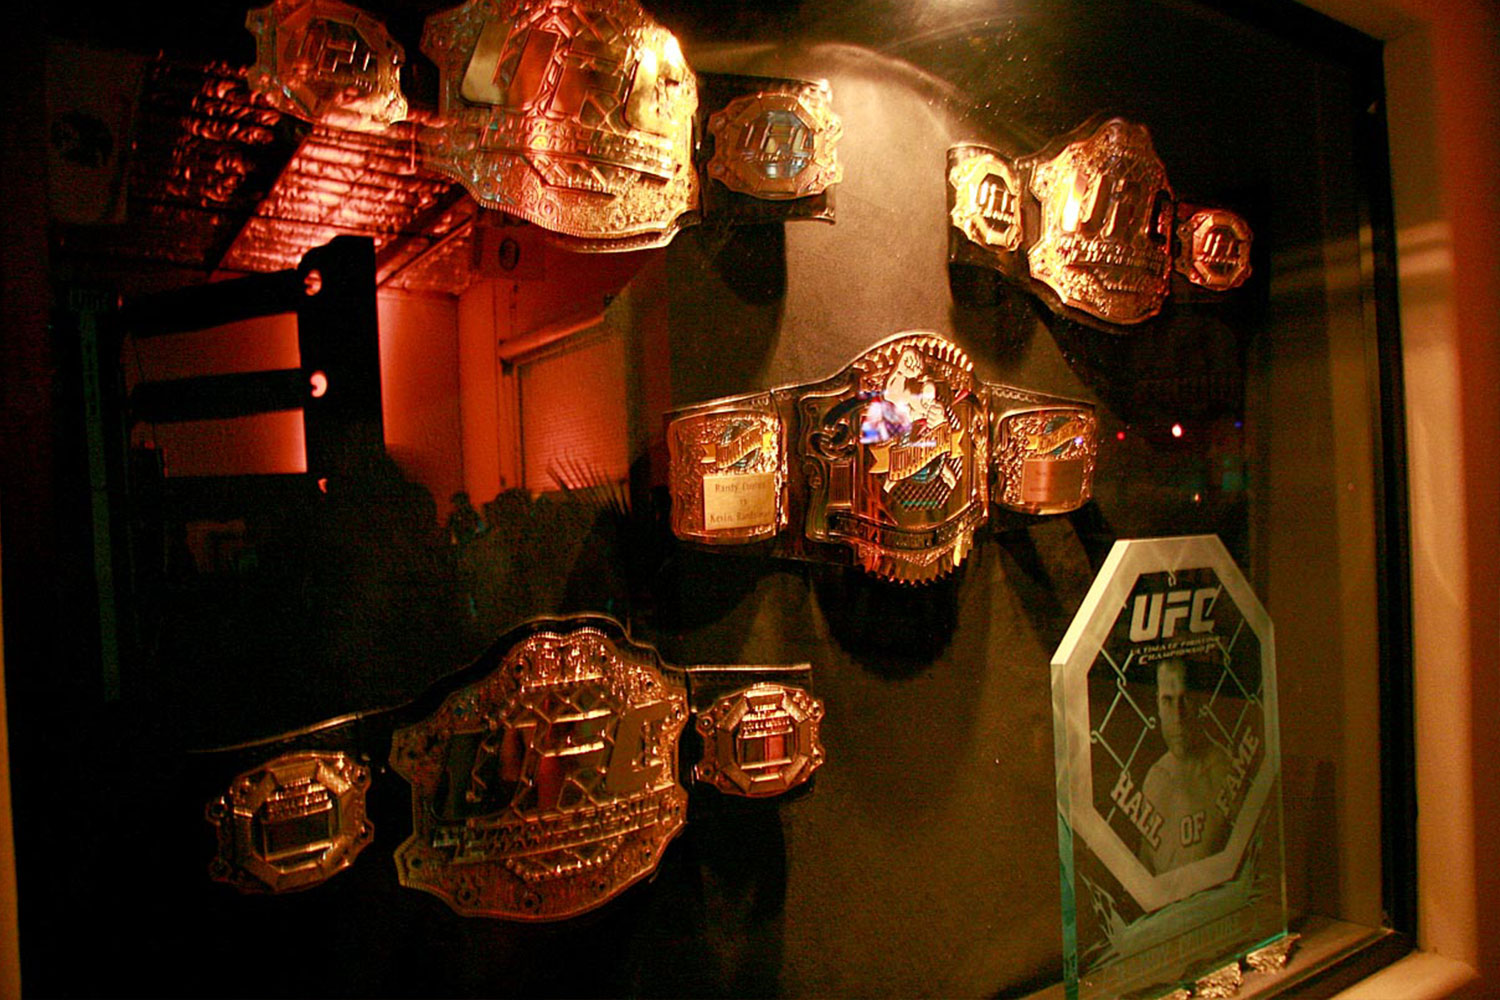 toast-ufc-decoration-party-event-planning-10twelve.jpg